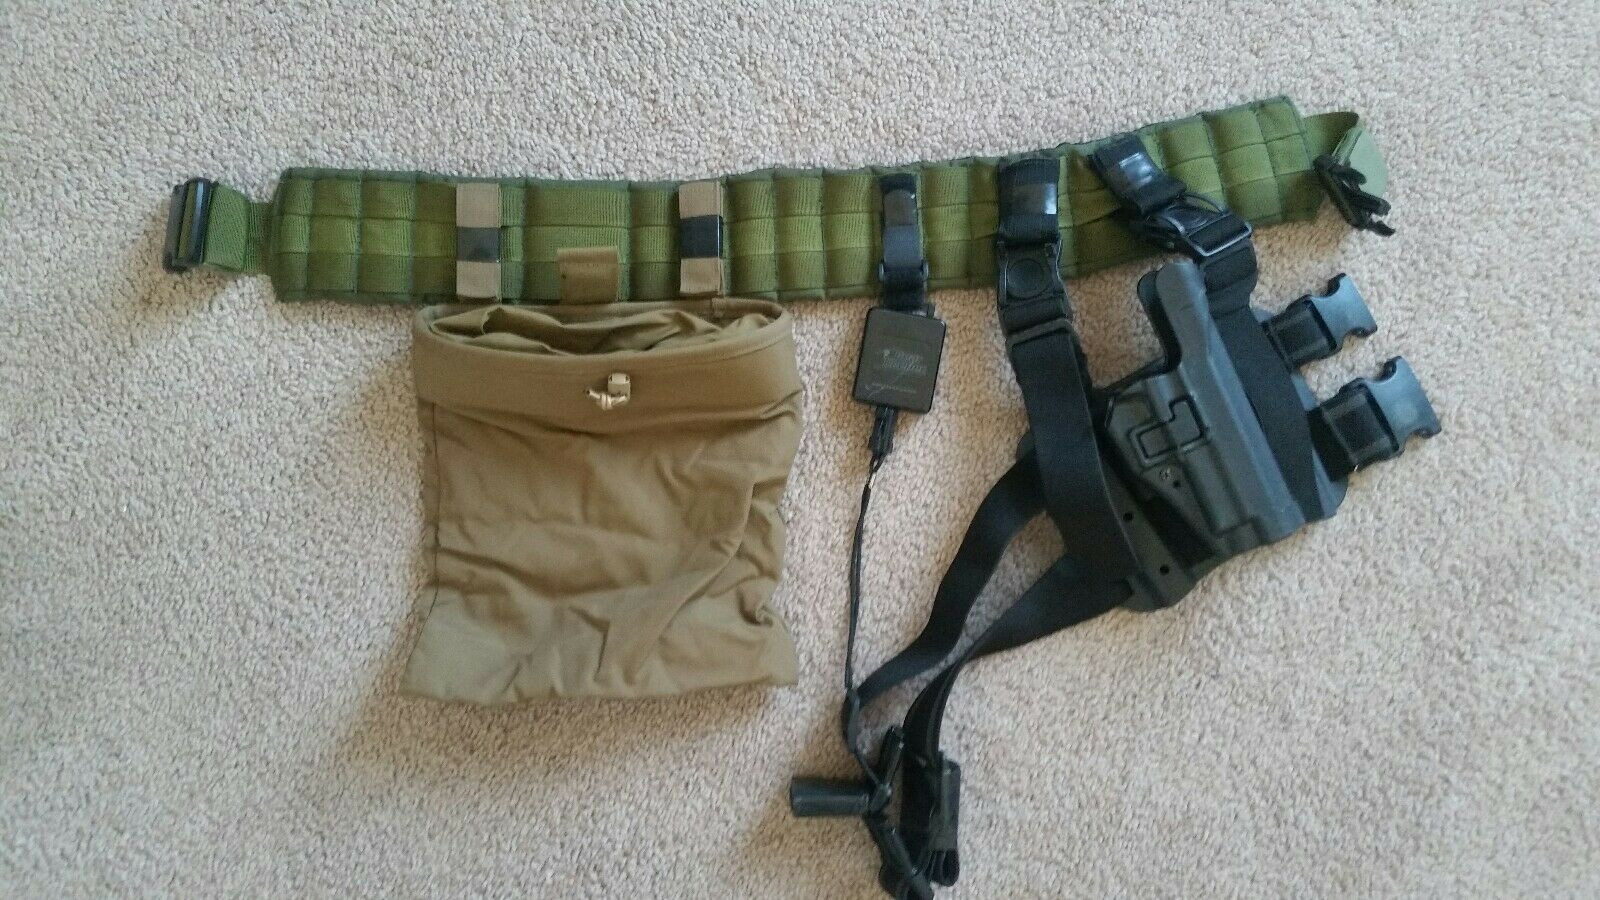 Tactical Molle  Operator belt with Sig P226 holster  with 60% off discount